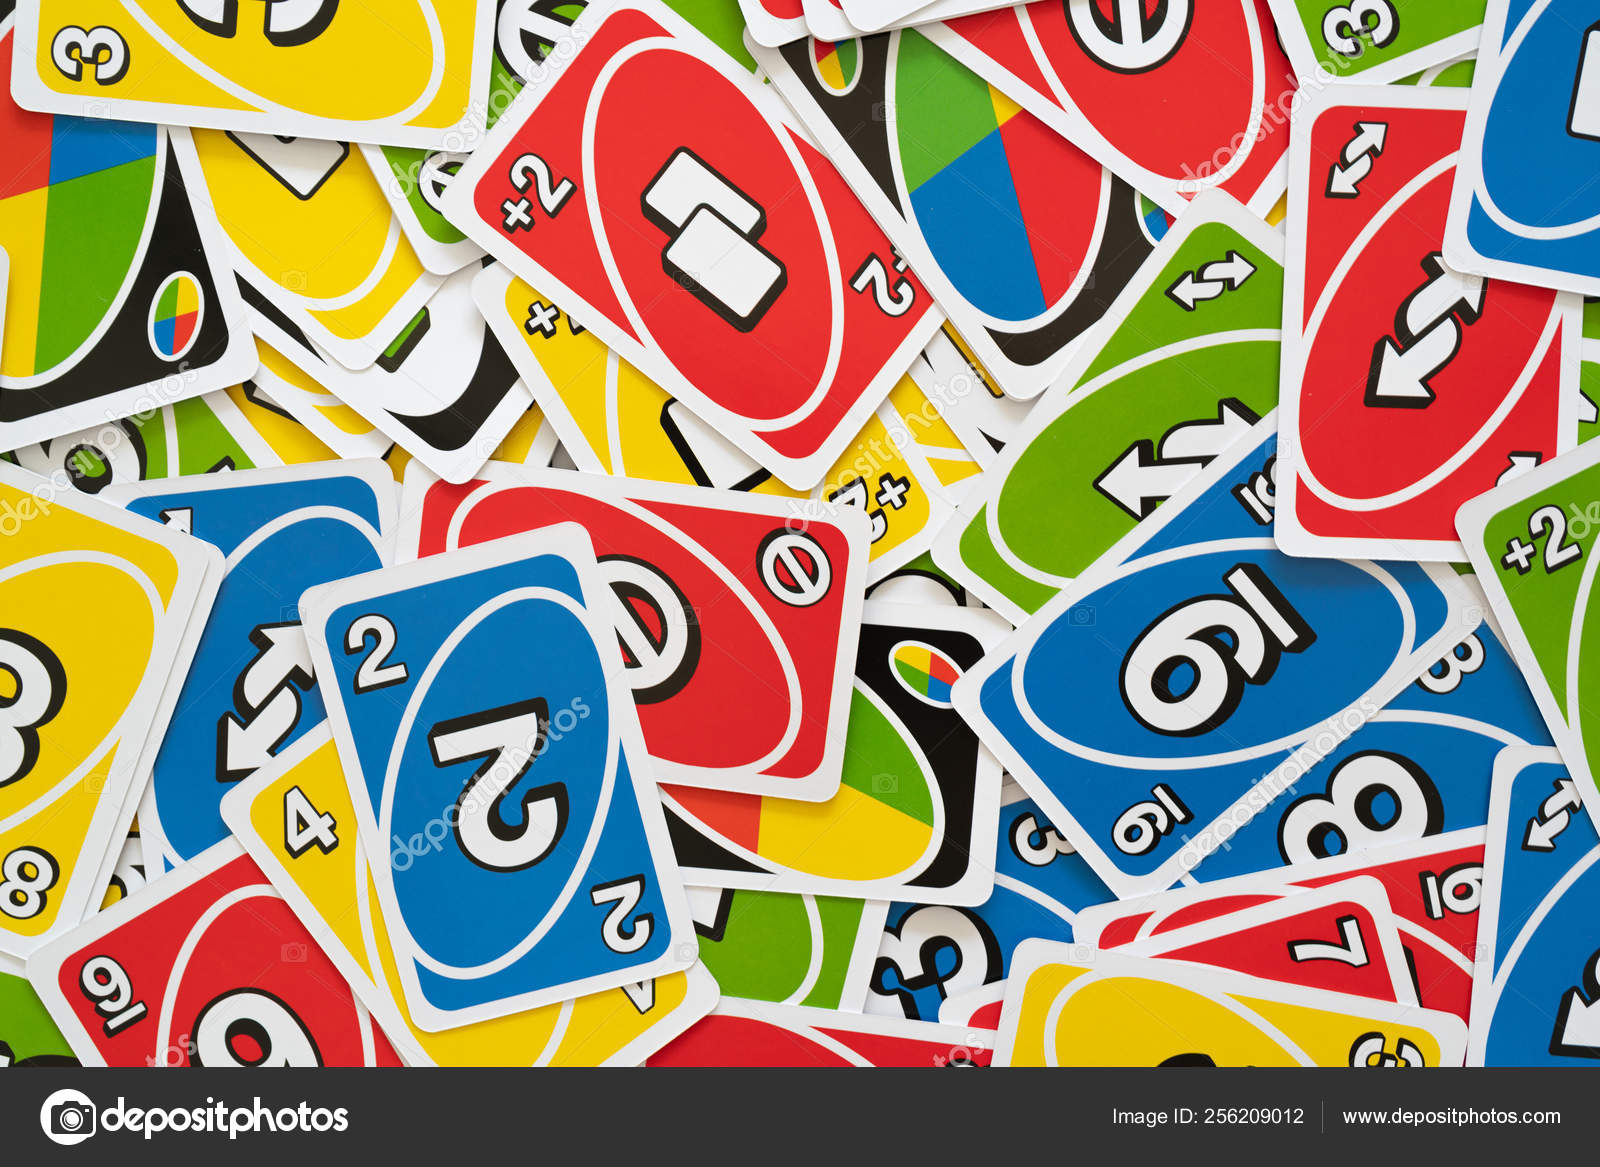 Uno game cards scattered all over the frame background